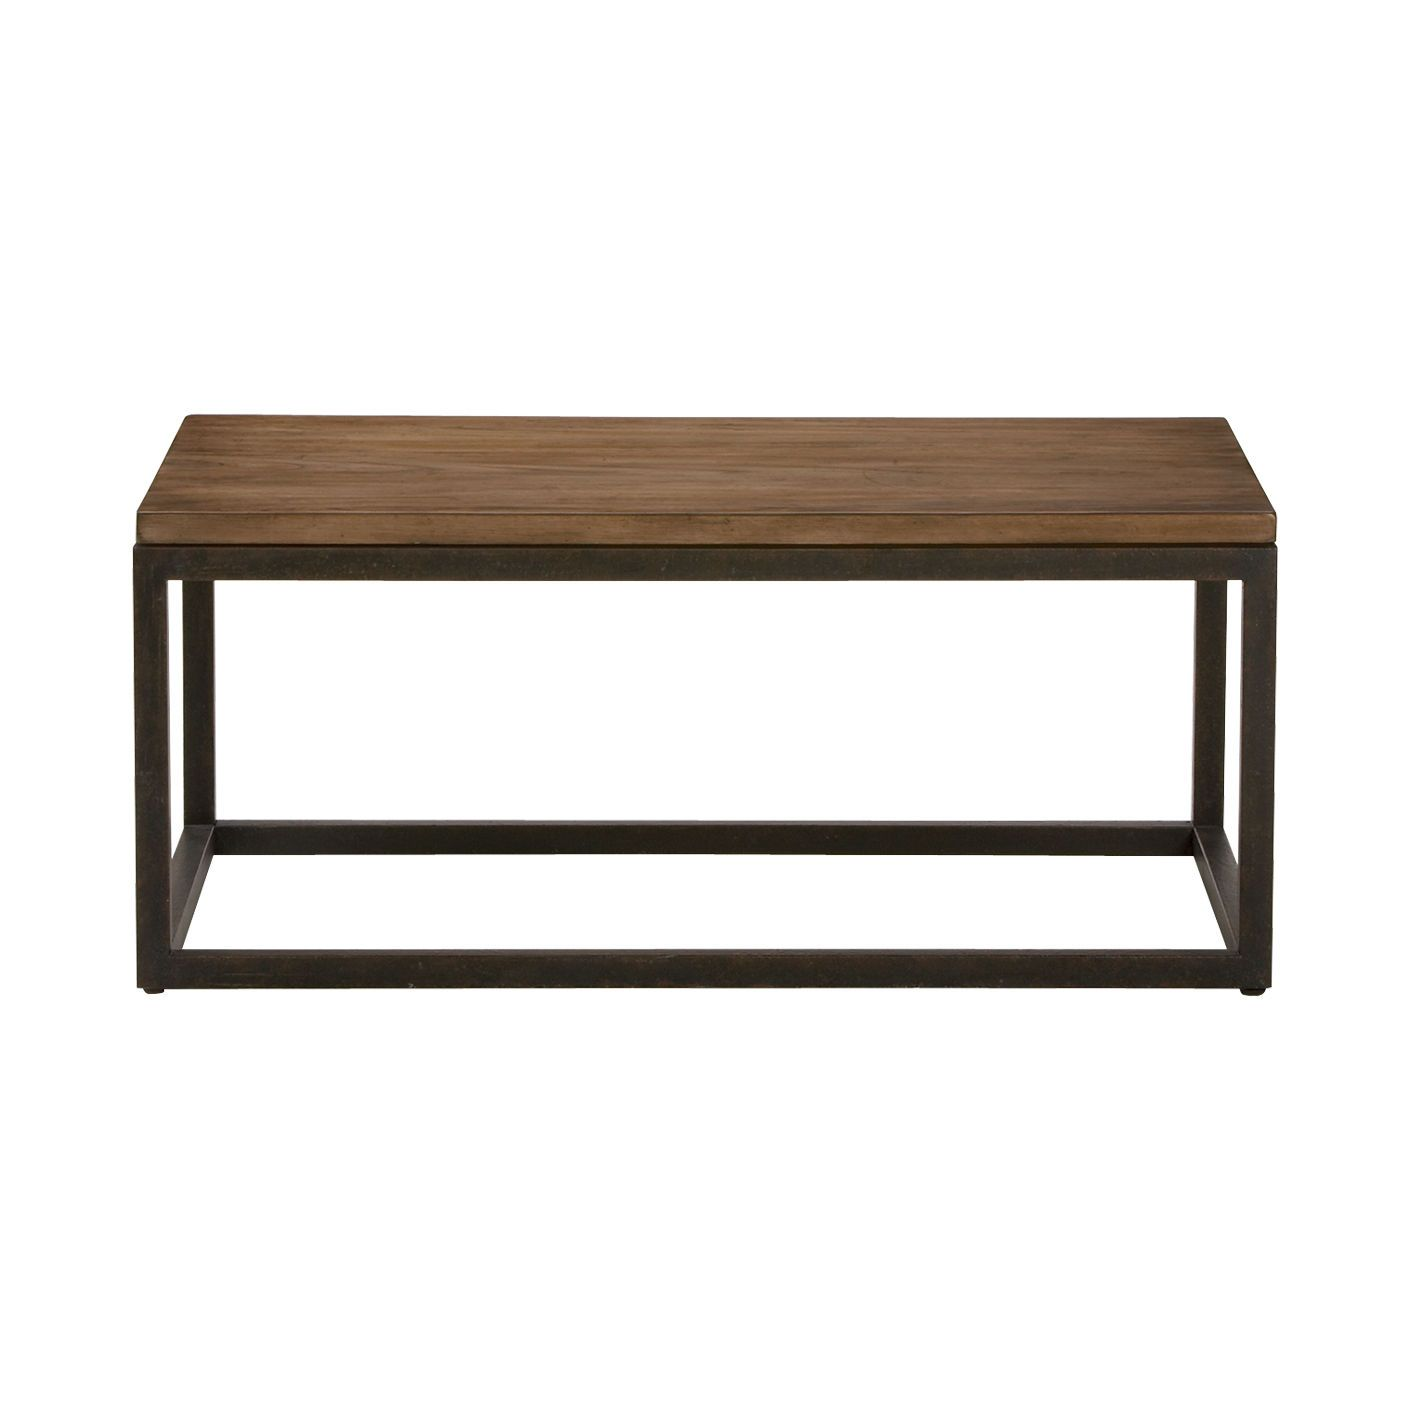 Meyer Small Coffee Table Ethan Allen US Decor ideas Pinterest